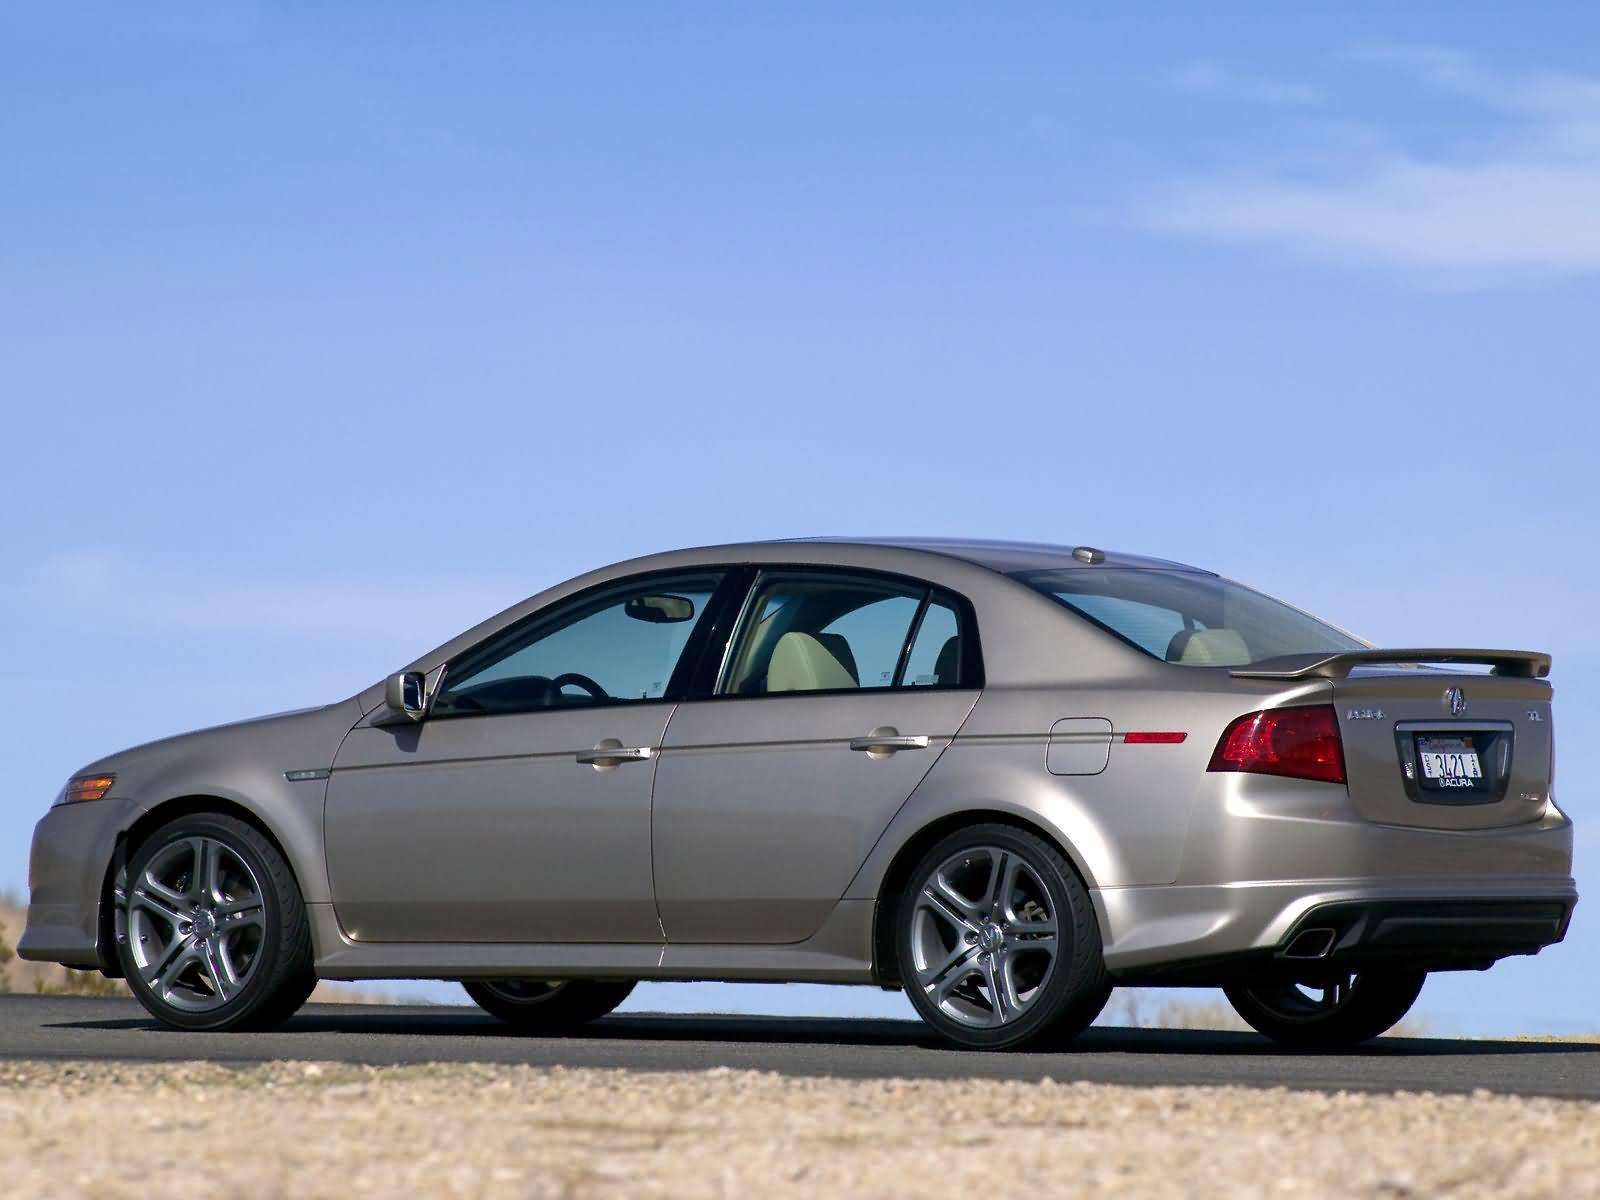 2004 Acura TL with ASPEC Performance Package photo - 4